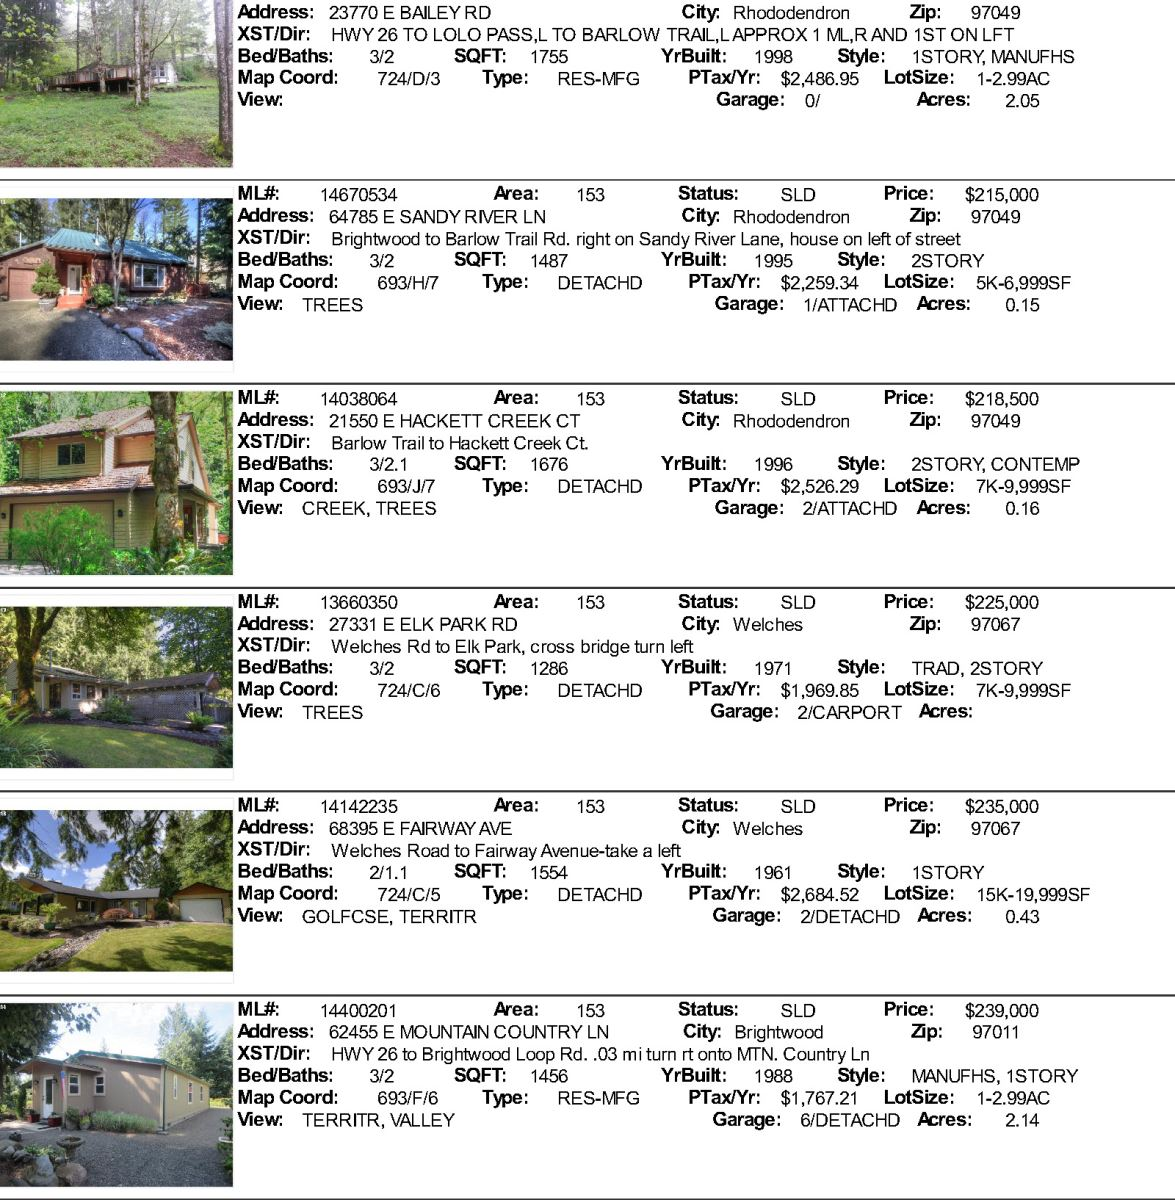 Government Camp,. Welches, Brightwood, Rhododendron Real Estate Sales